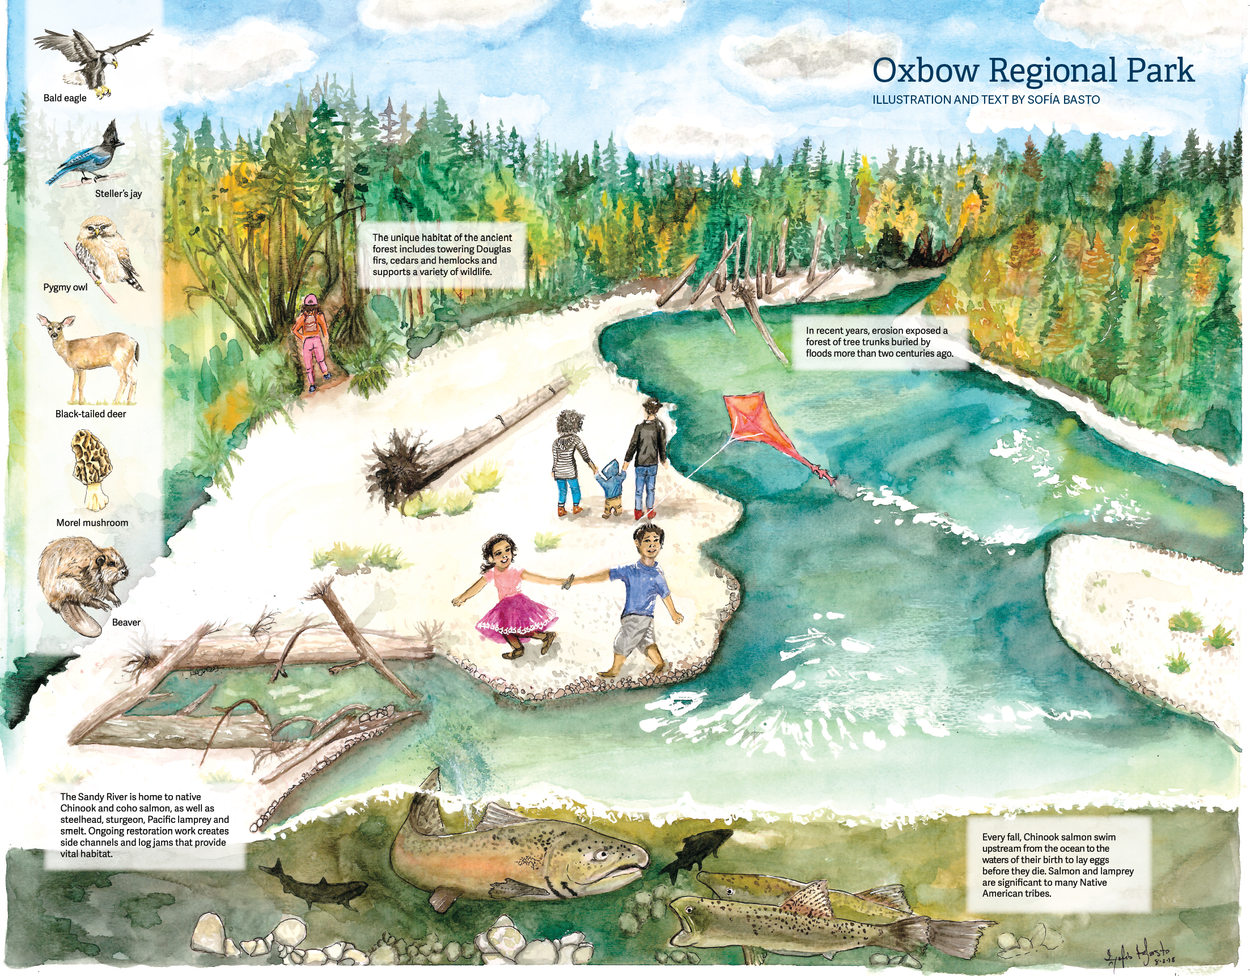 watercolor illustration of Oxbow Regional Park by Sofía Basto